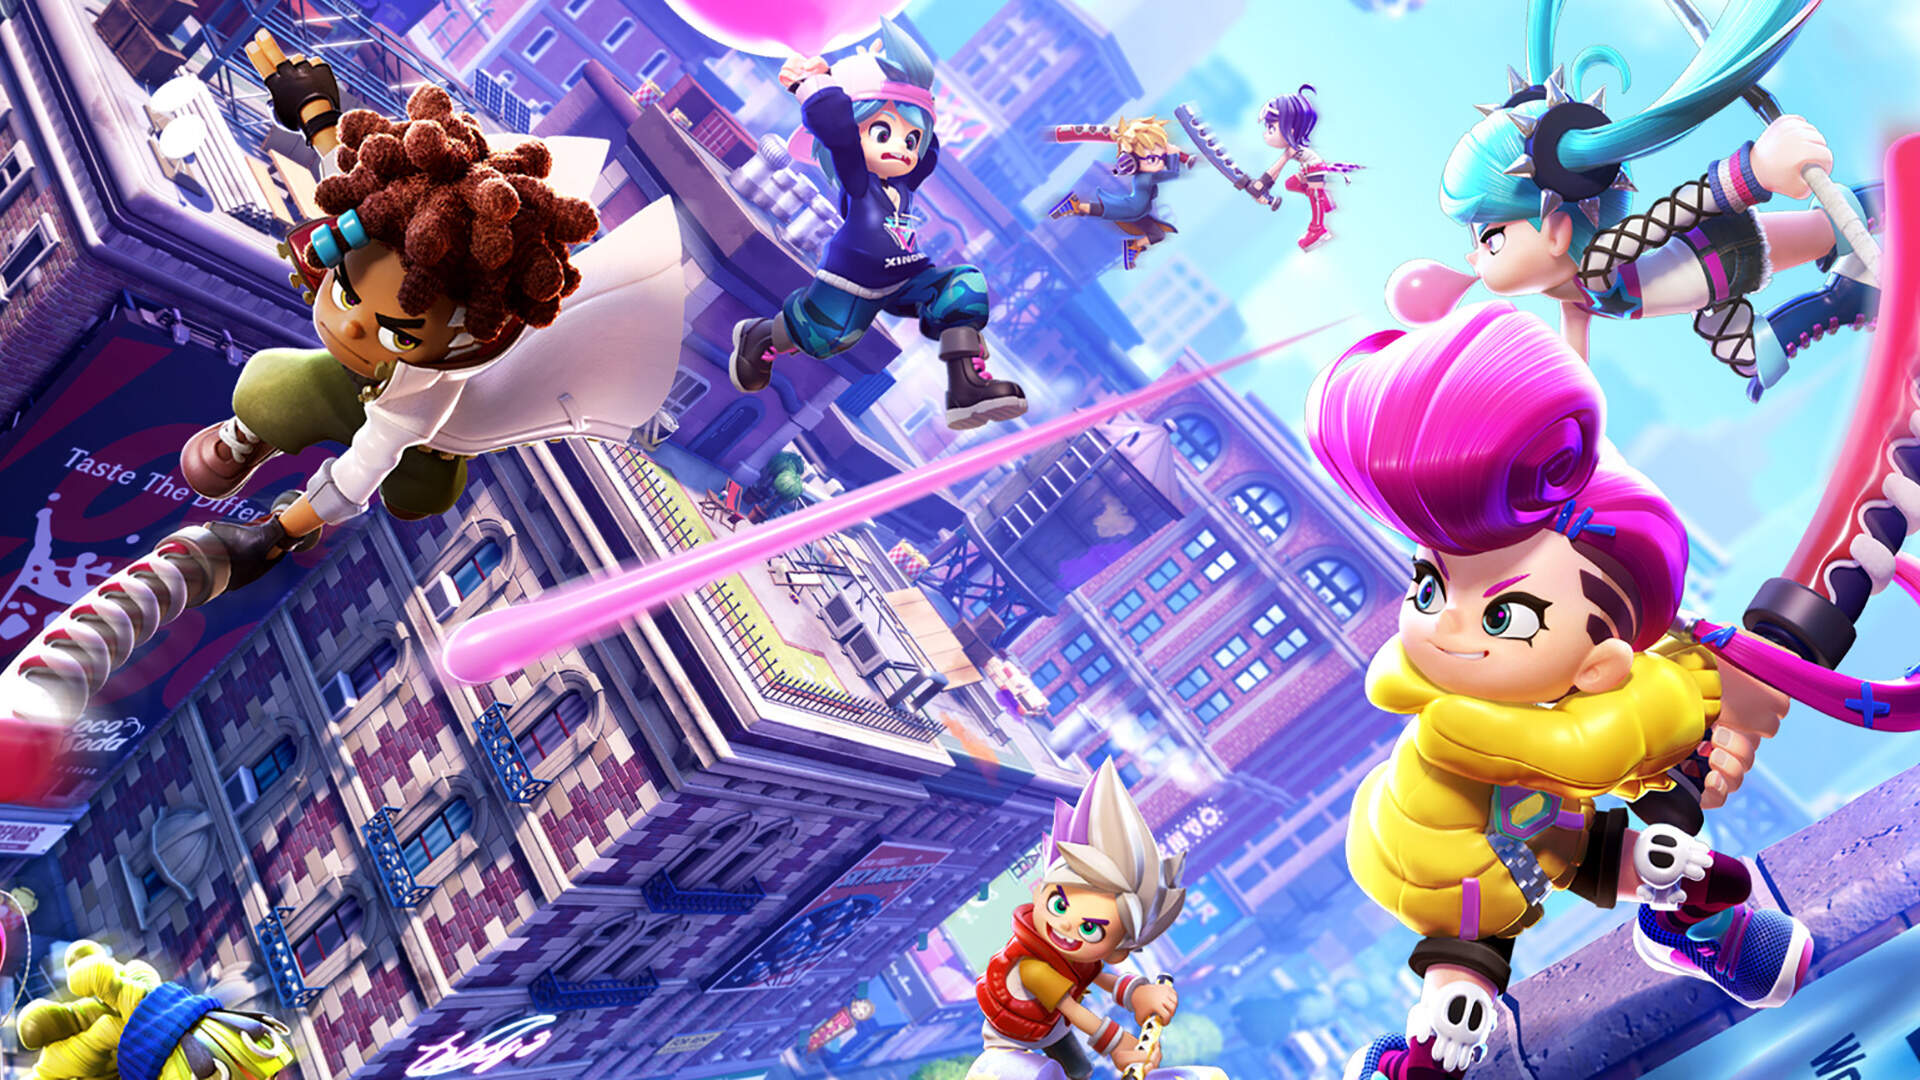 The Splatoon-Like Ninjala, Developed by the Creators of Puzzle and Dragons, Has Been Delayed